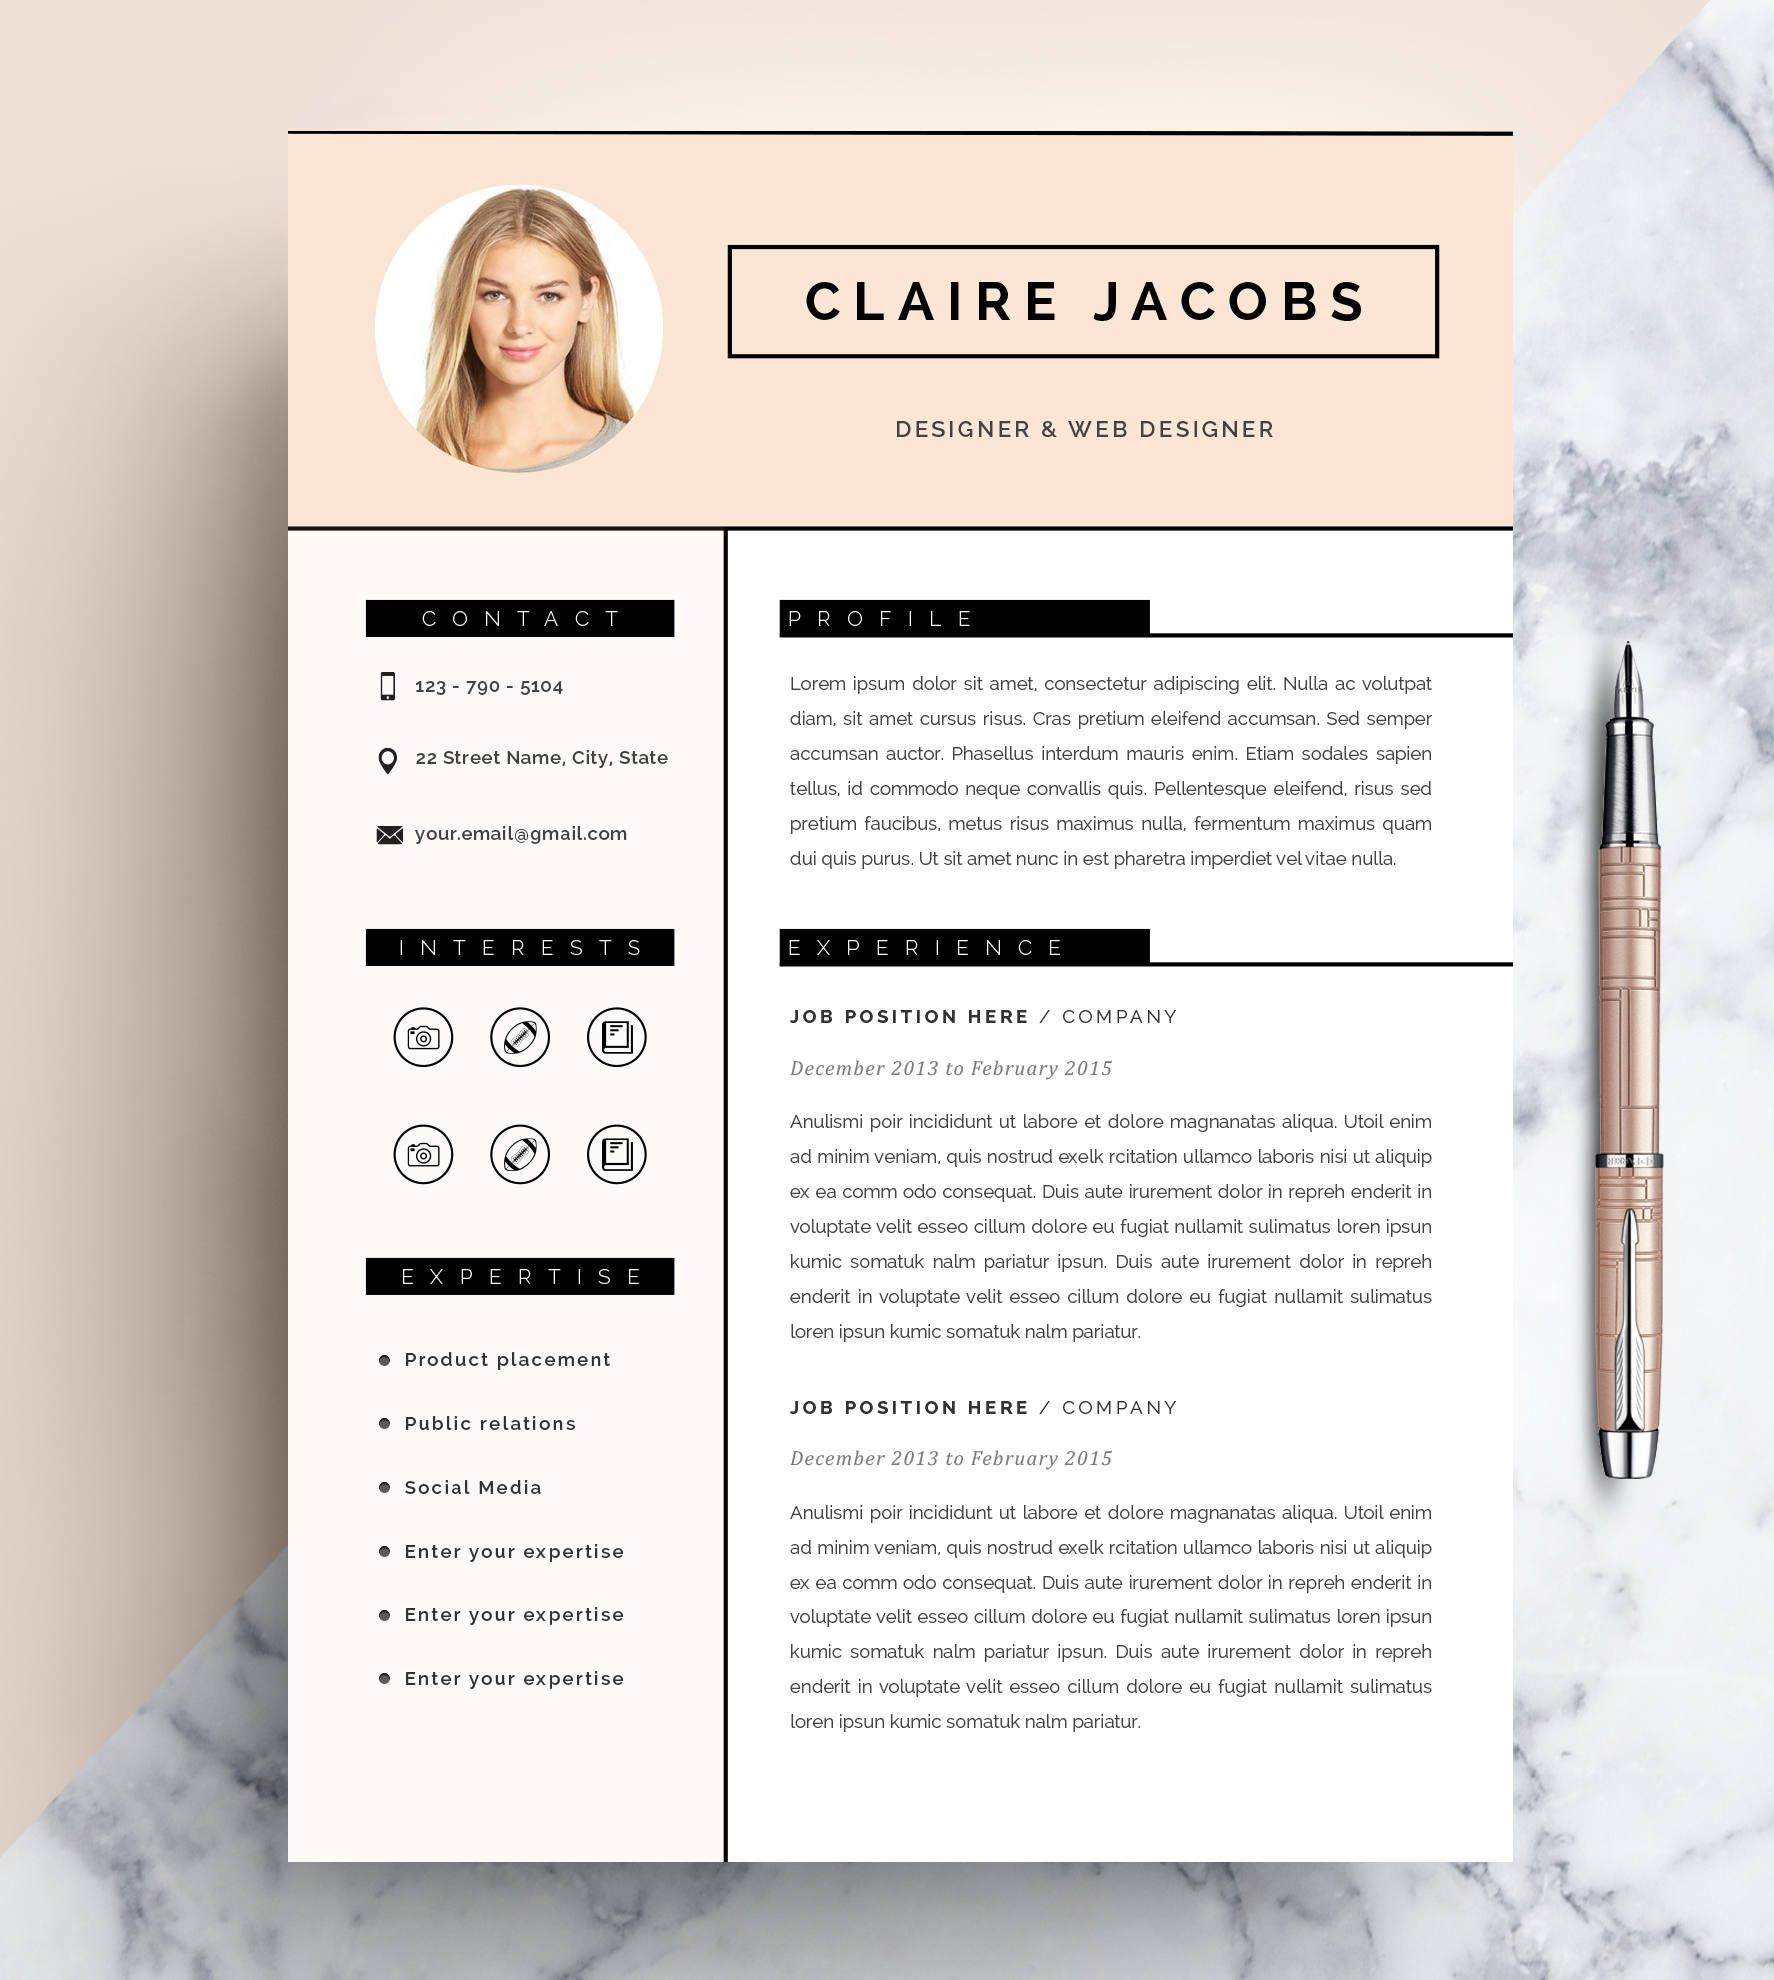 creative resume template, cv instant download it manager template word good computer skills to list on for inexperienced student